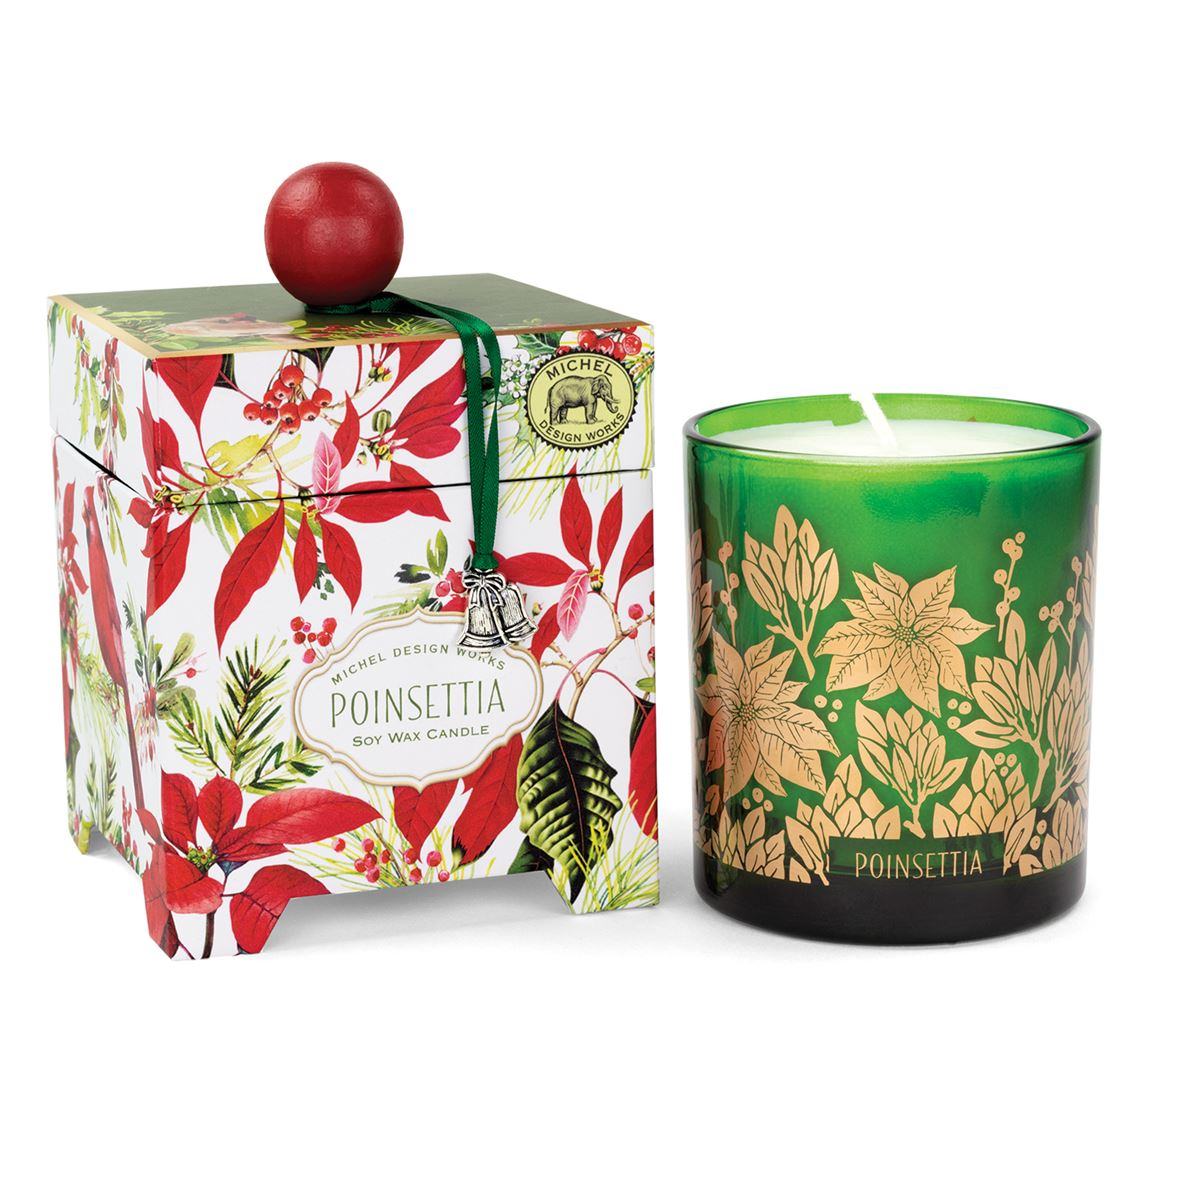 Michel Design Works Poinsettia Candle 14oz | Putti Christmas Canada